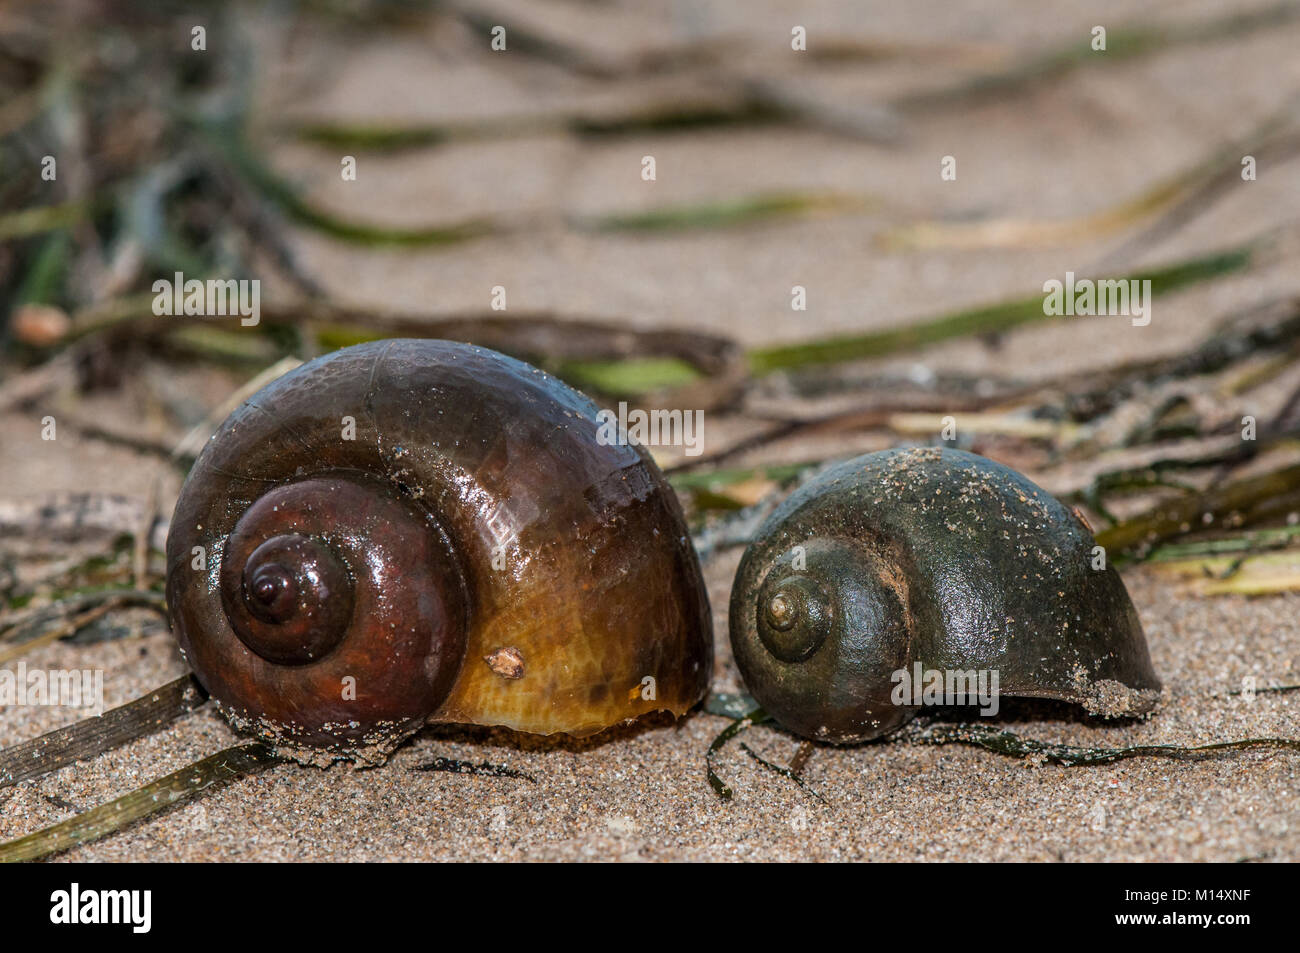 close-up view of a freshwater apple snail (pomacea insularum), considered a plague in the ebro delta, Delta de l'Ebre, Stock Photo